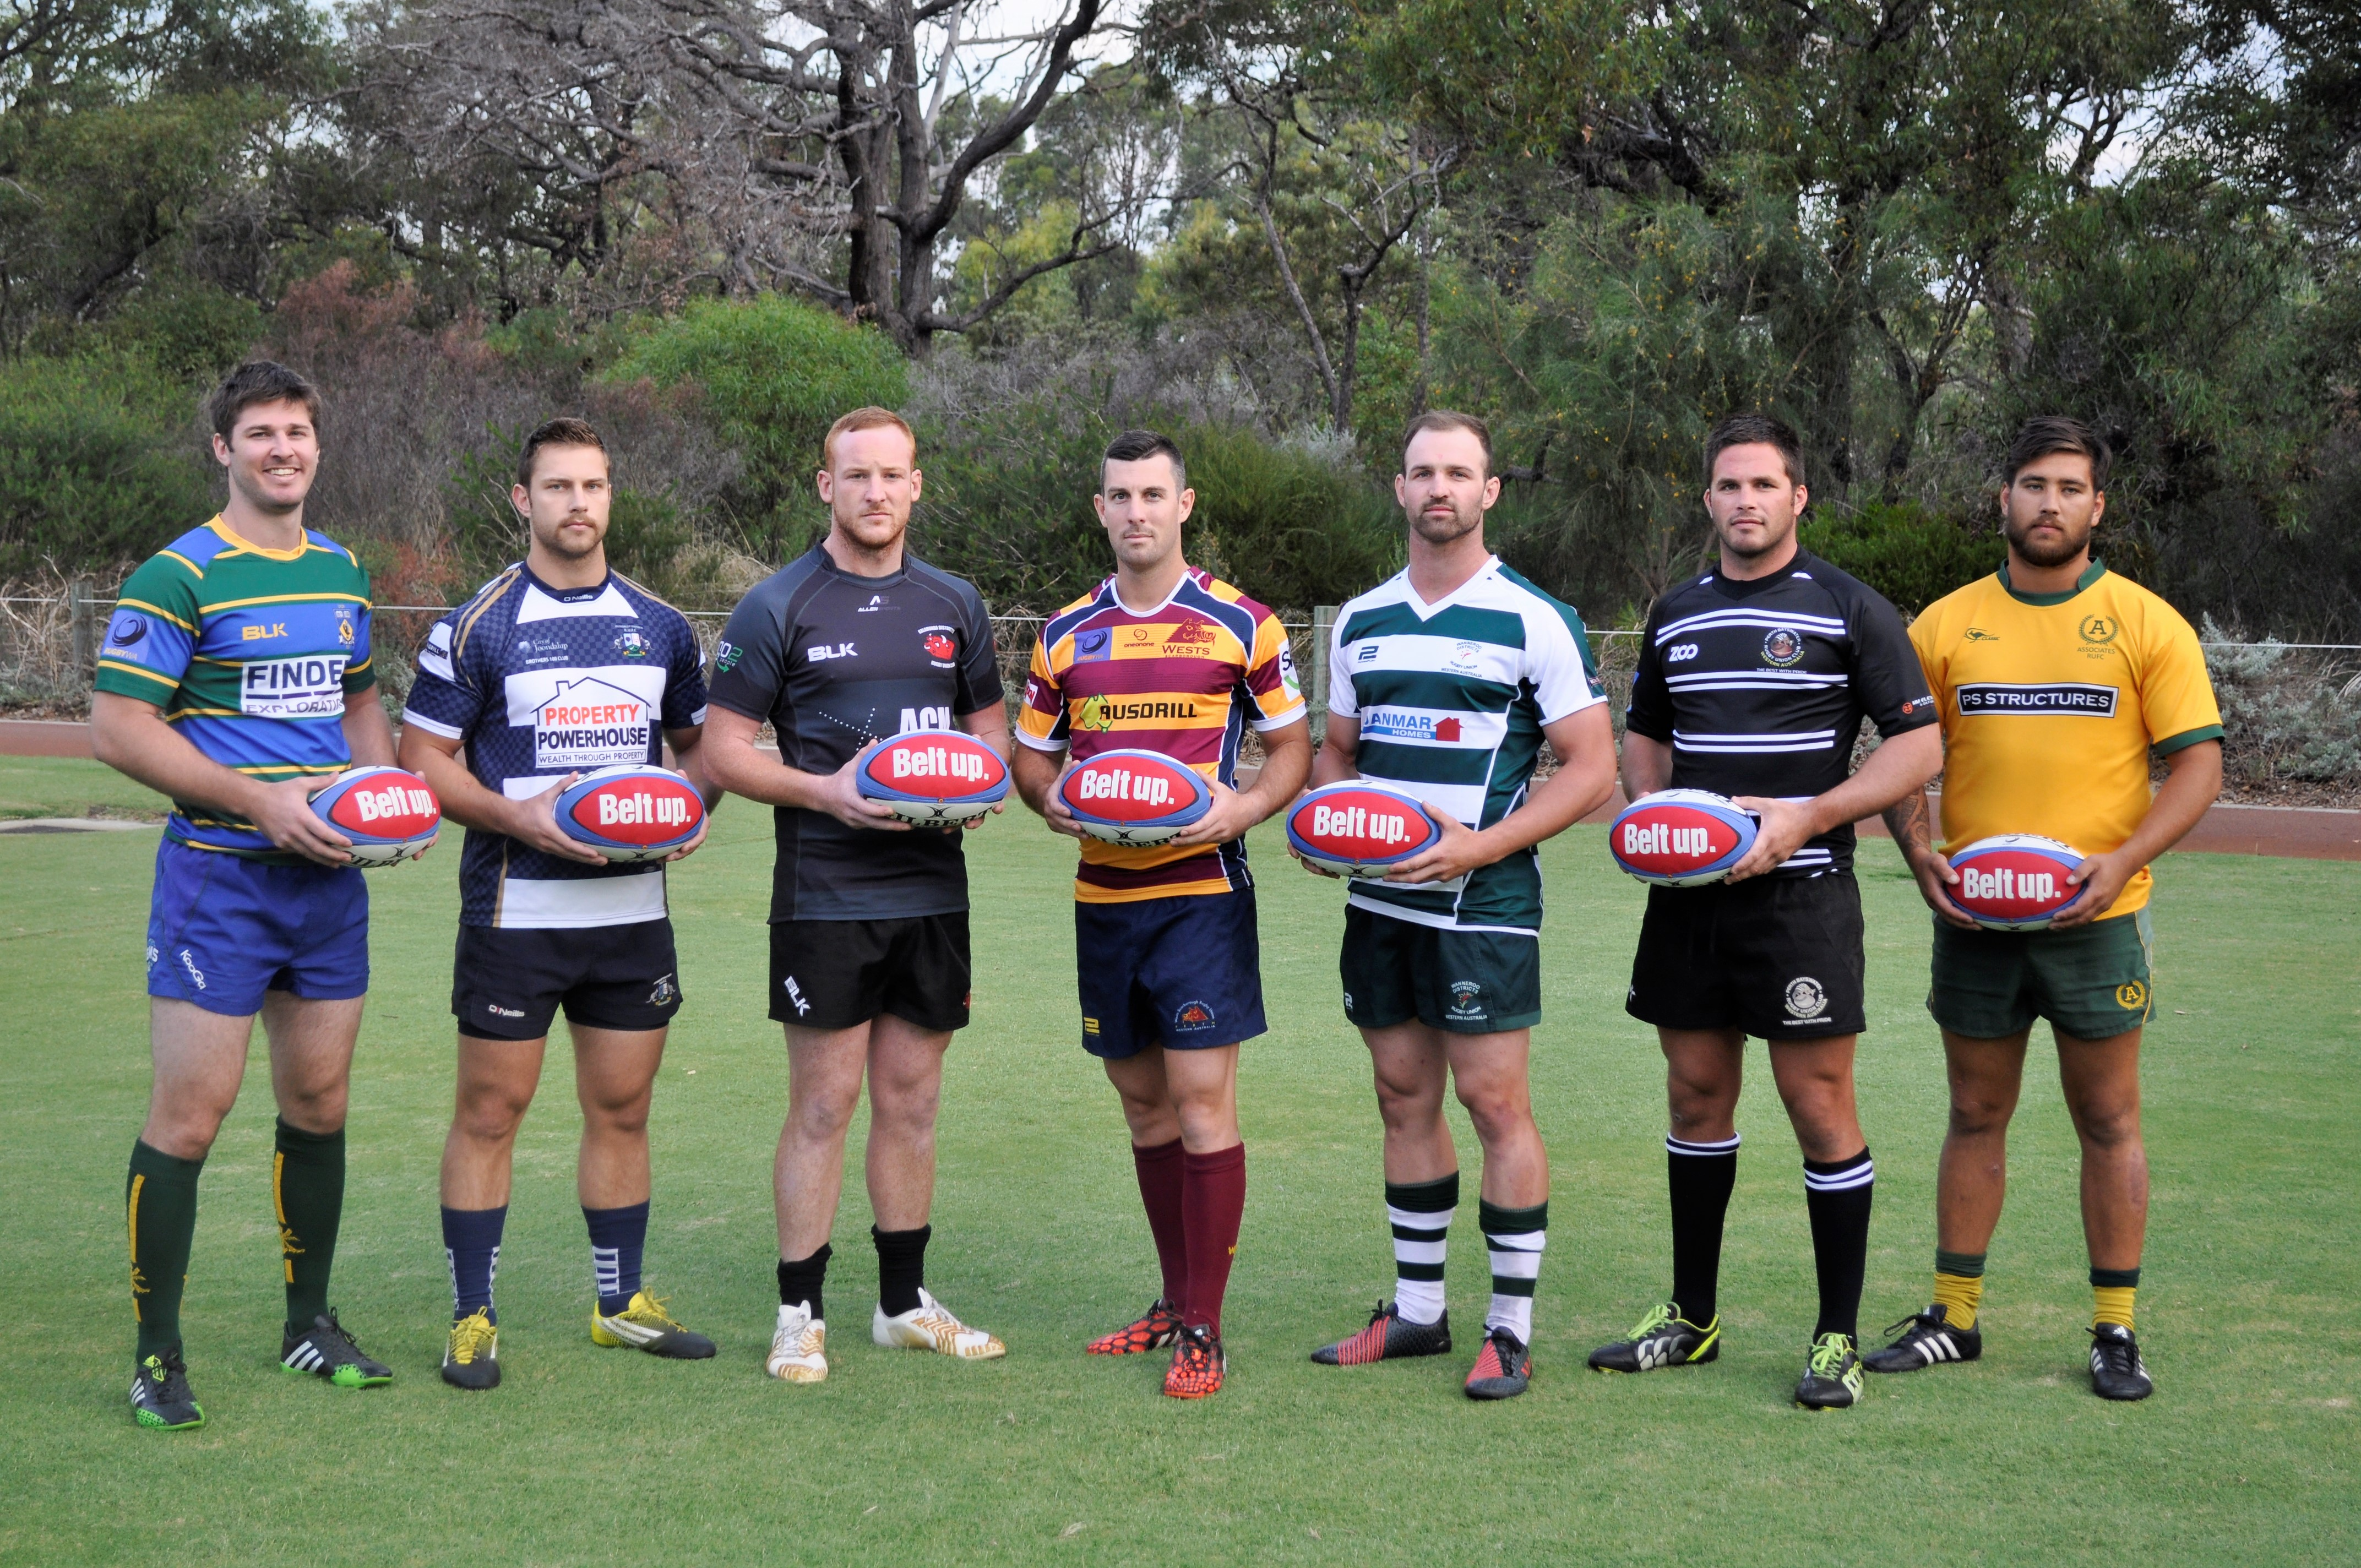 The RugbyWA club captains promote Belt Up Round. Picture: RugbyWA/Supplied